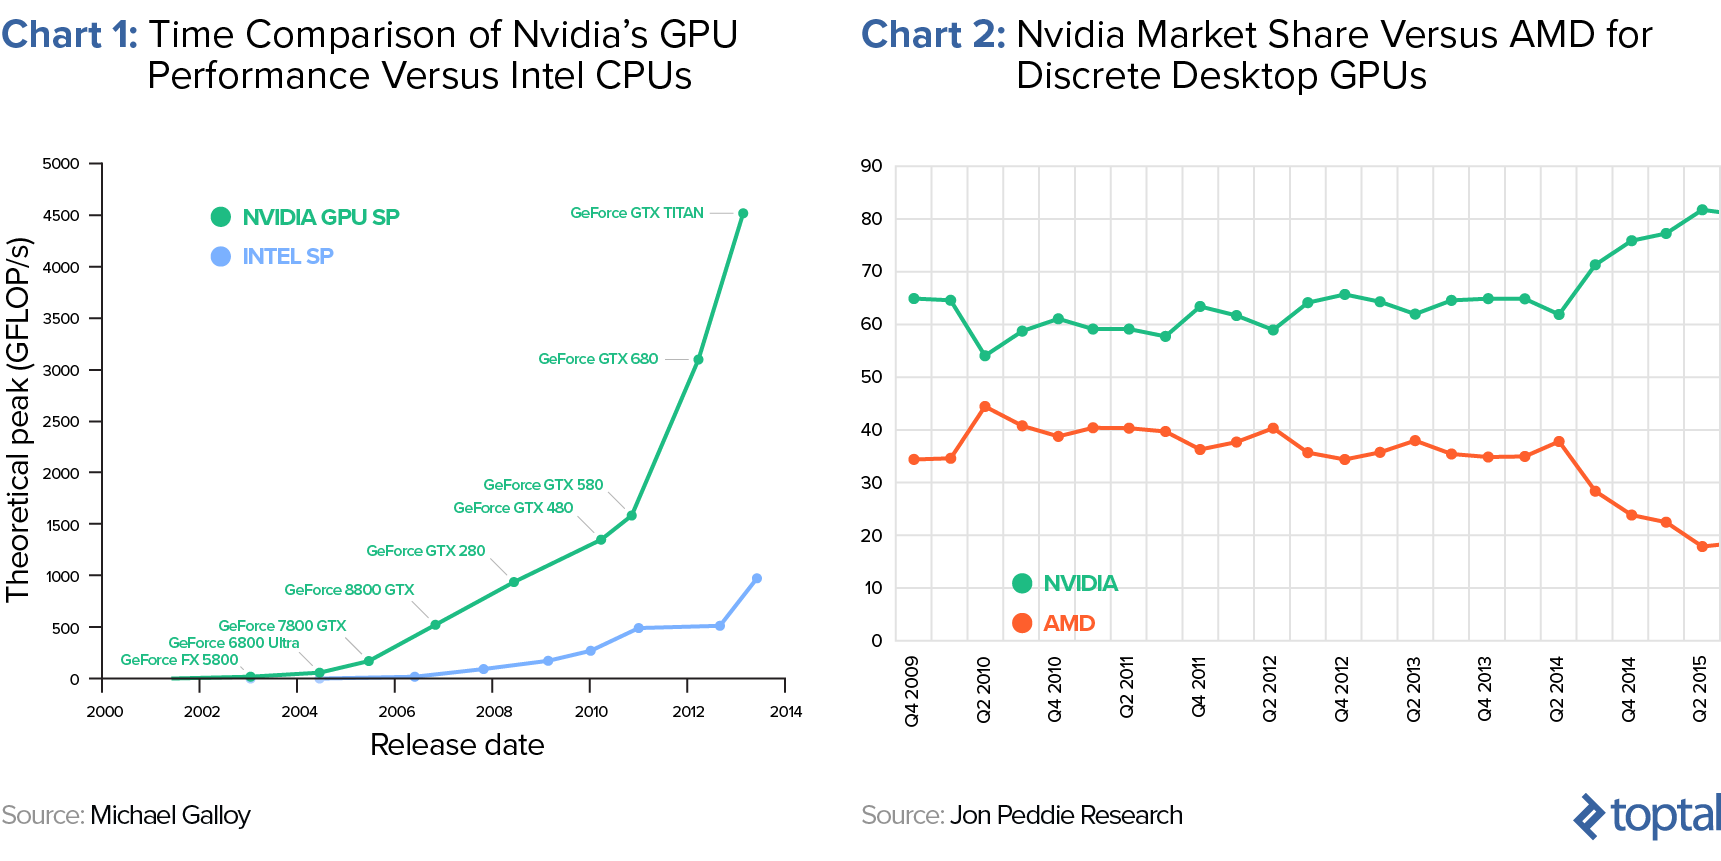 Chart 1: Time Comparison of Nvidia's GPU Performance Improvements versus Intel CPUs, and Chart 2: Nvidia Market Share versus AMD for Discrete Desktop GPUs (in %)